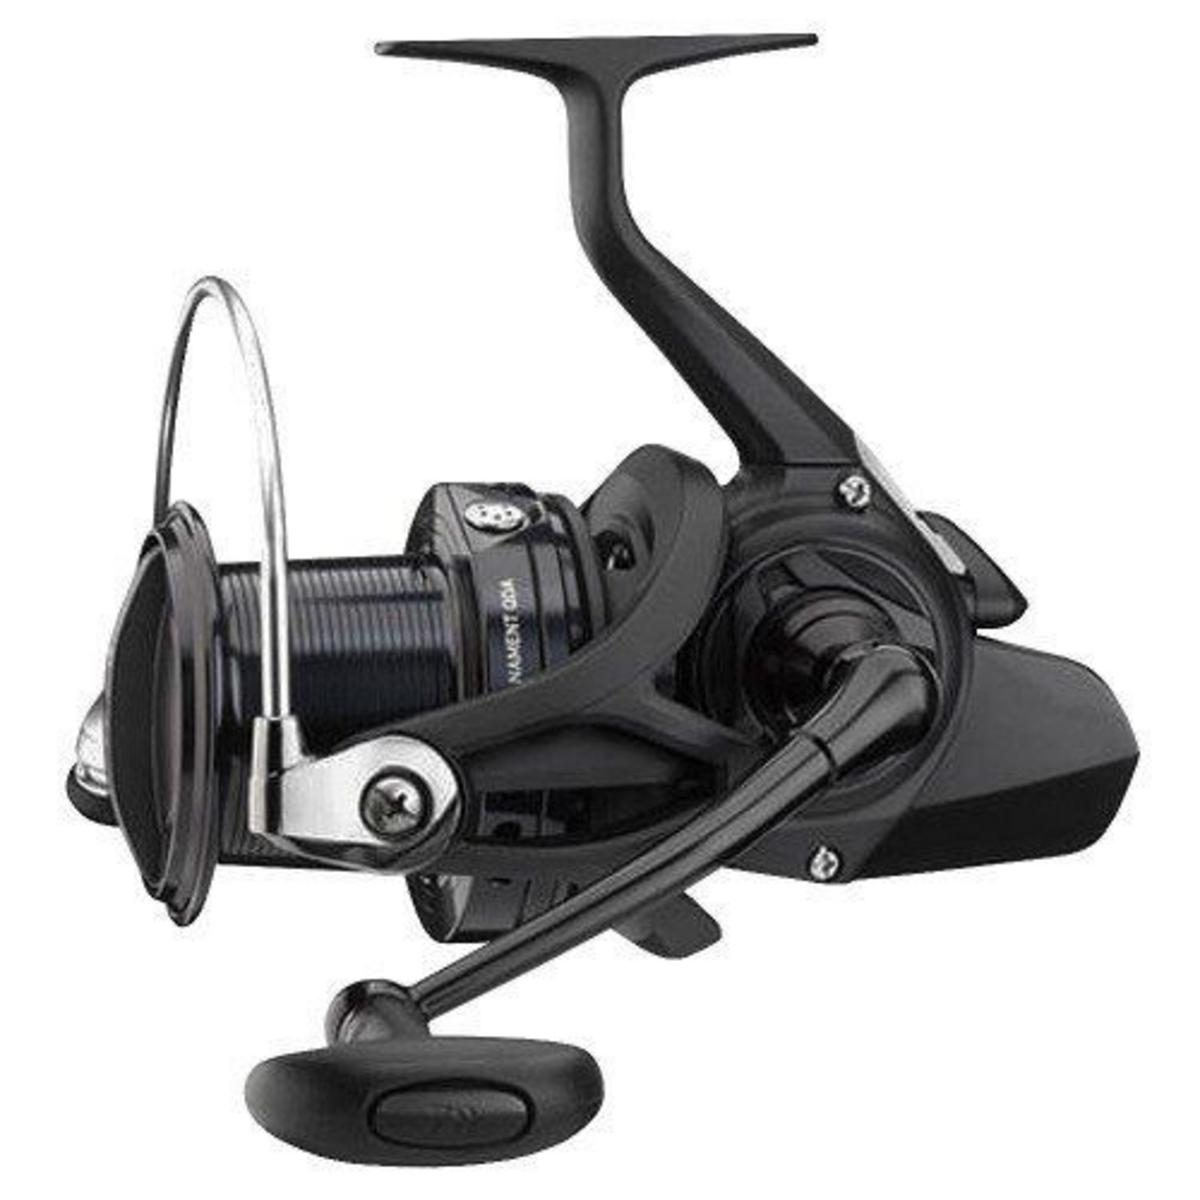 EX DISPLAY DAIWA TOURNAMENT CARP SPINNING REEL TN5500QDA CLEARANCE OFFER